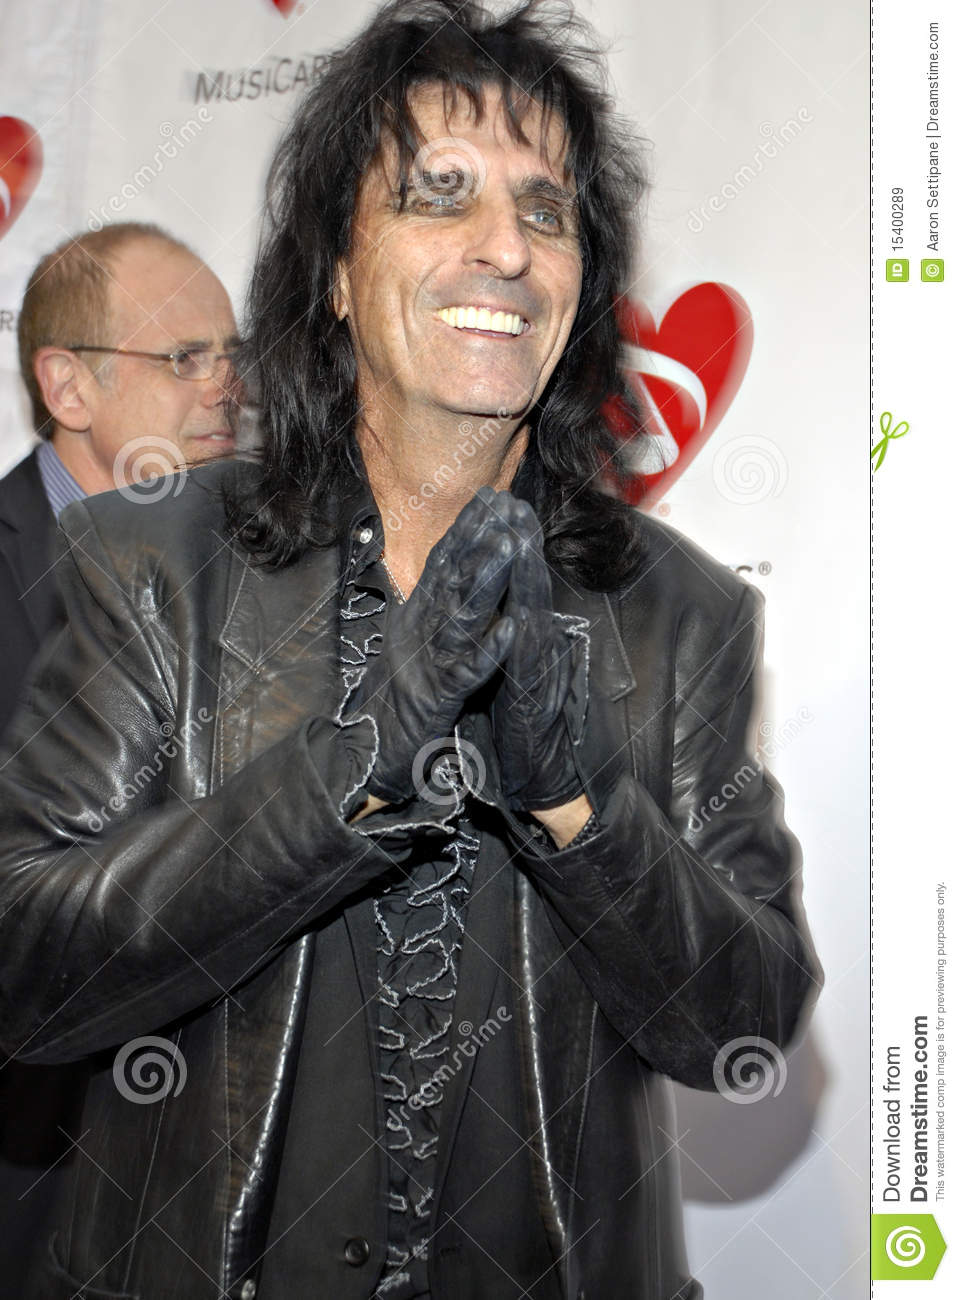 Alice Cooper on the red carpet.